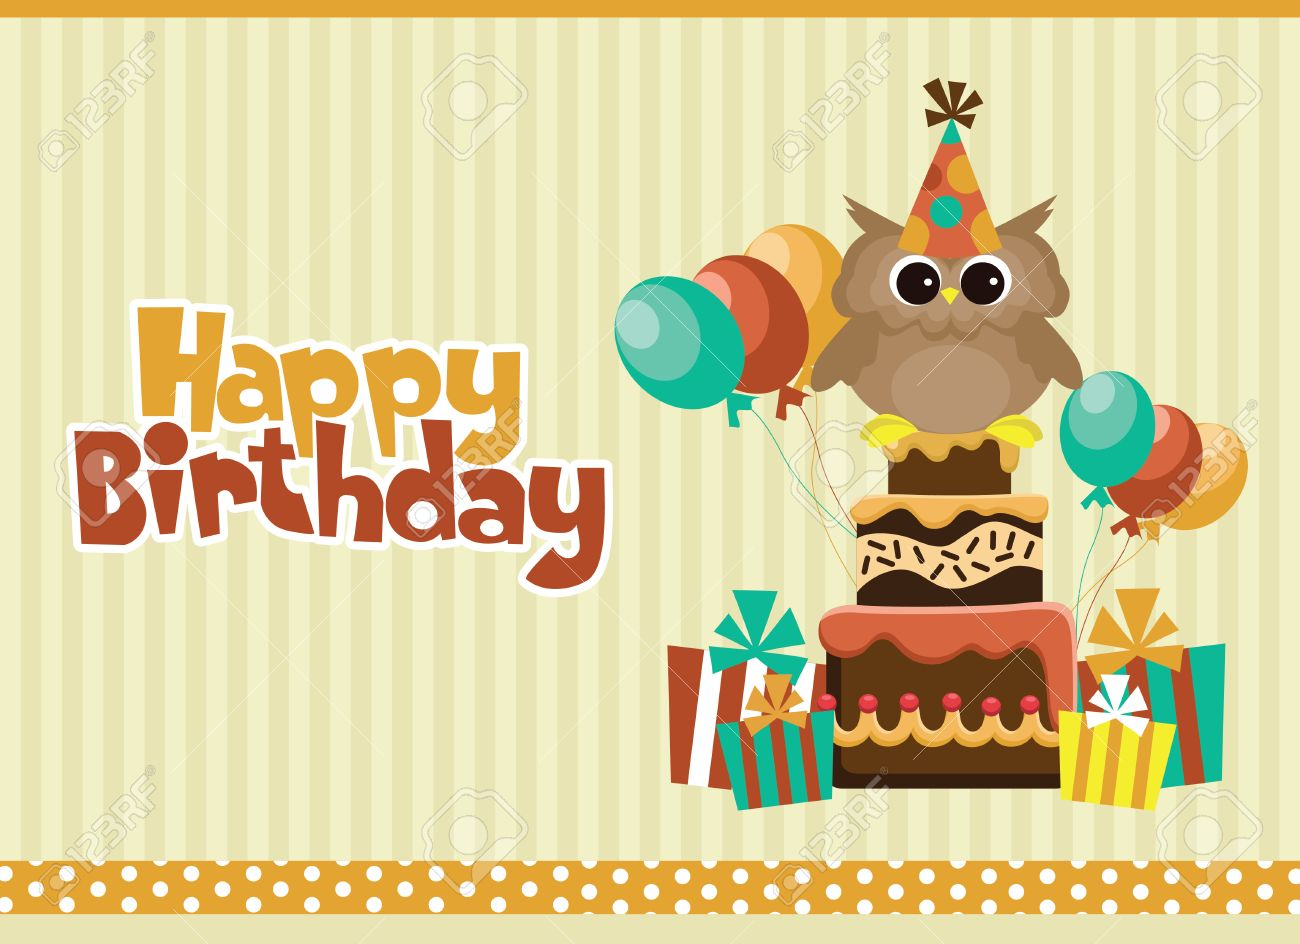 Happy Birthday Card Design Vector Illustration Royalty Free – Happy Birthday Card Design Free